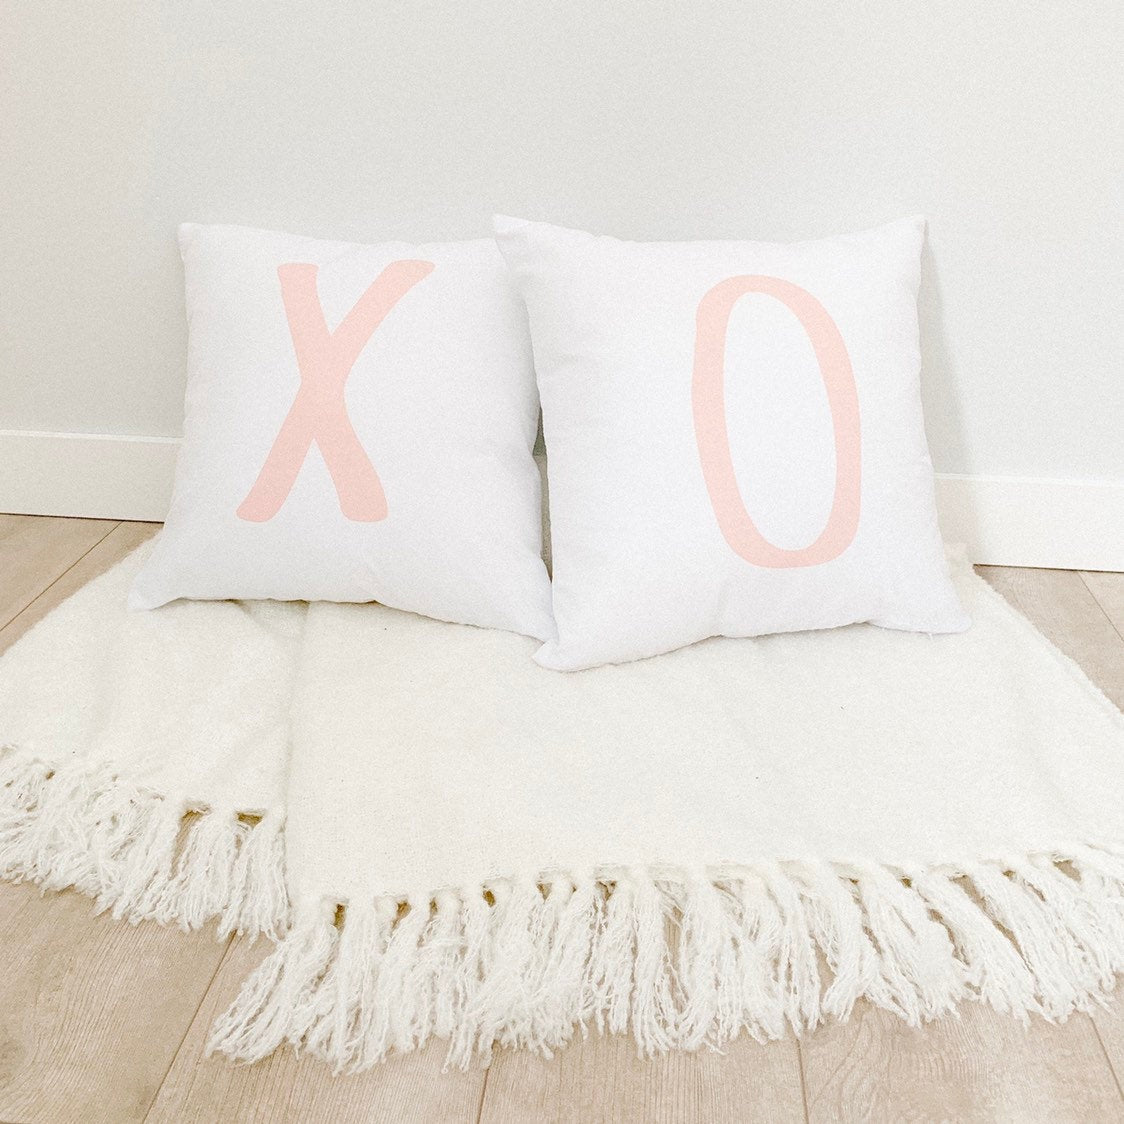 Little Lily Shop XO Pillow Case Set of 2